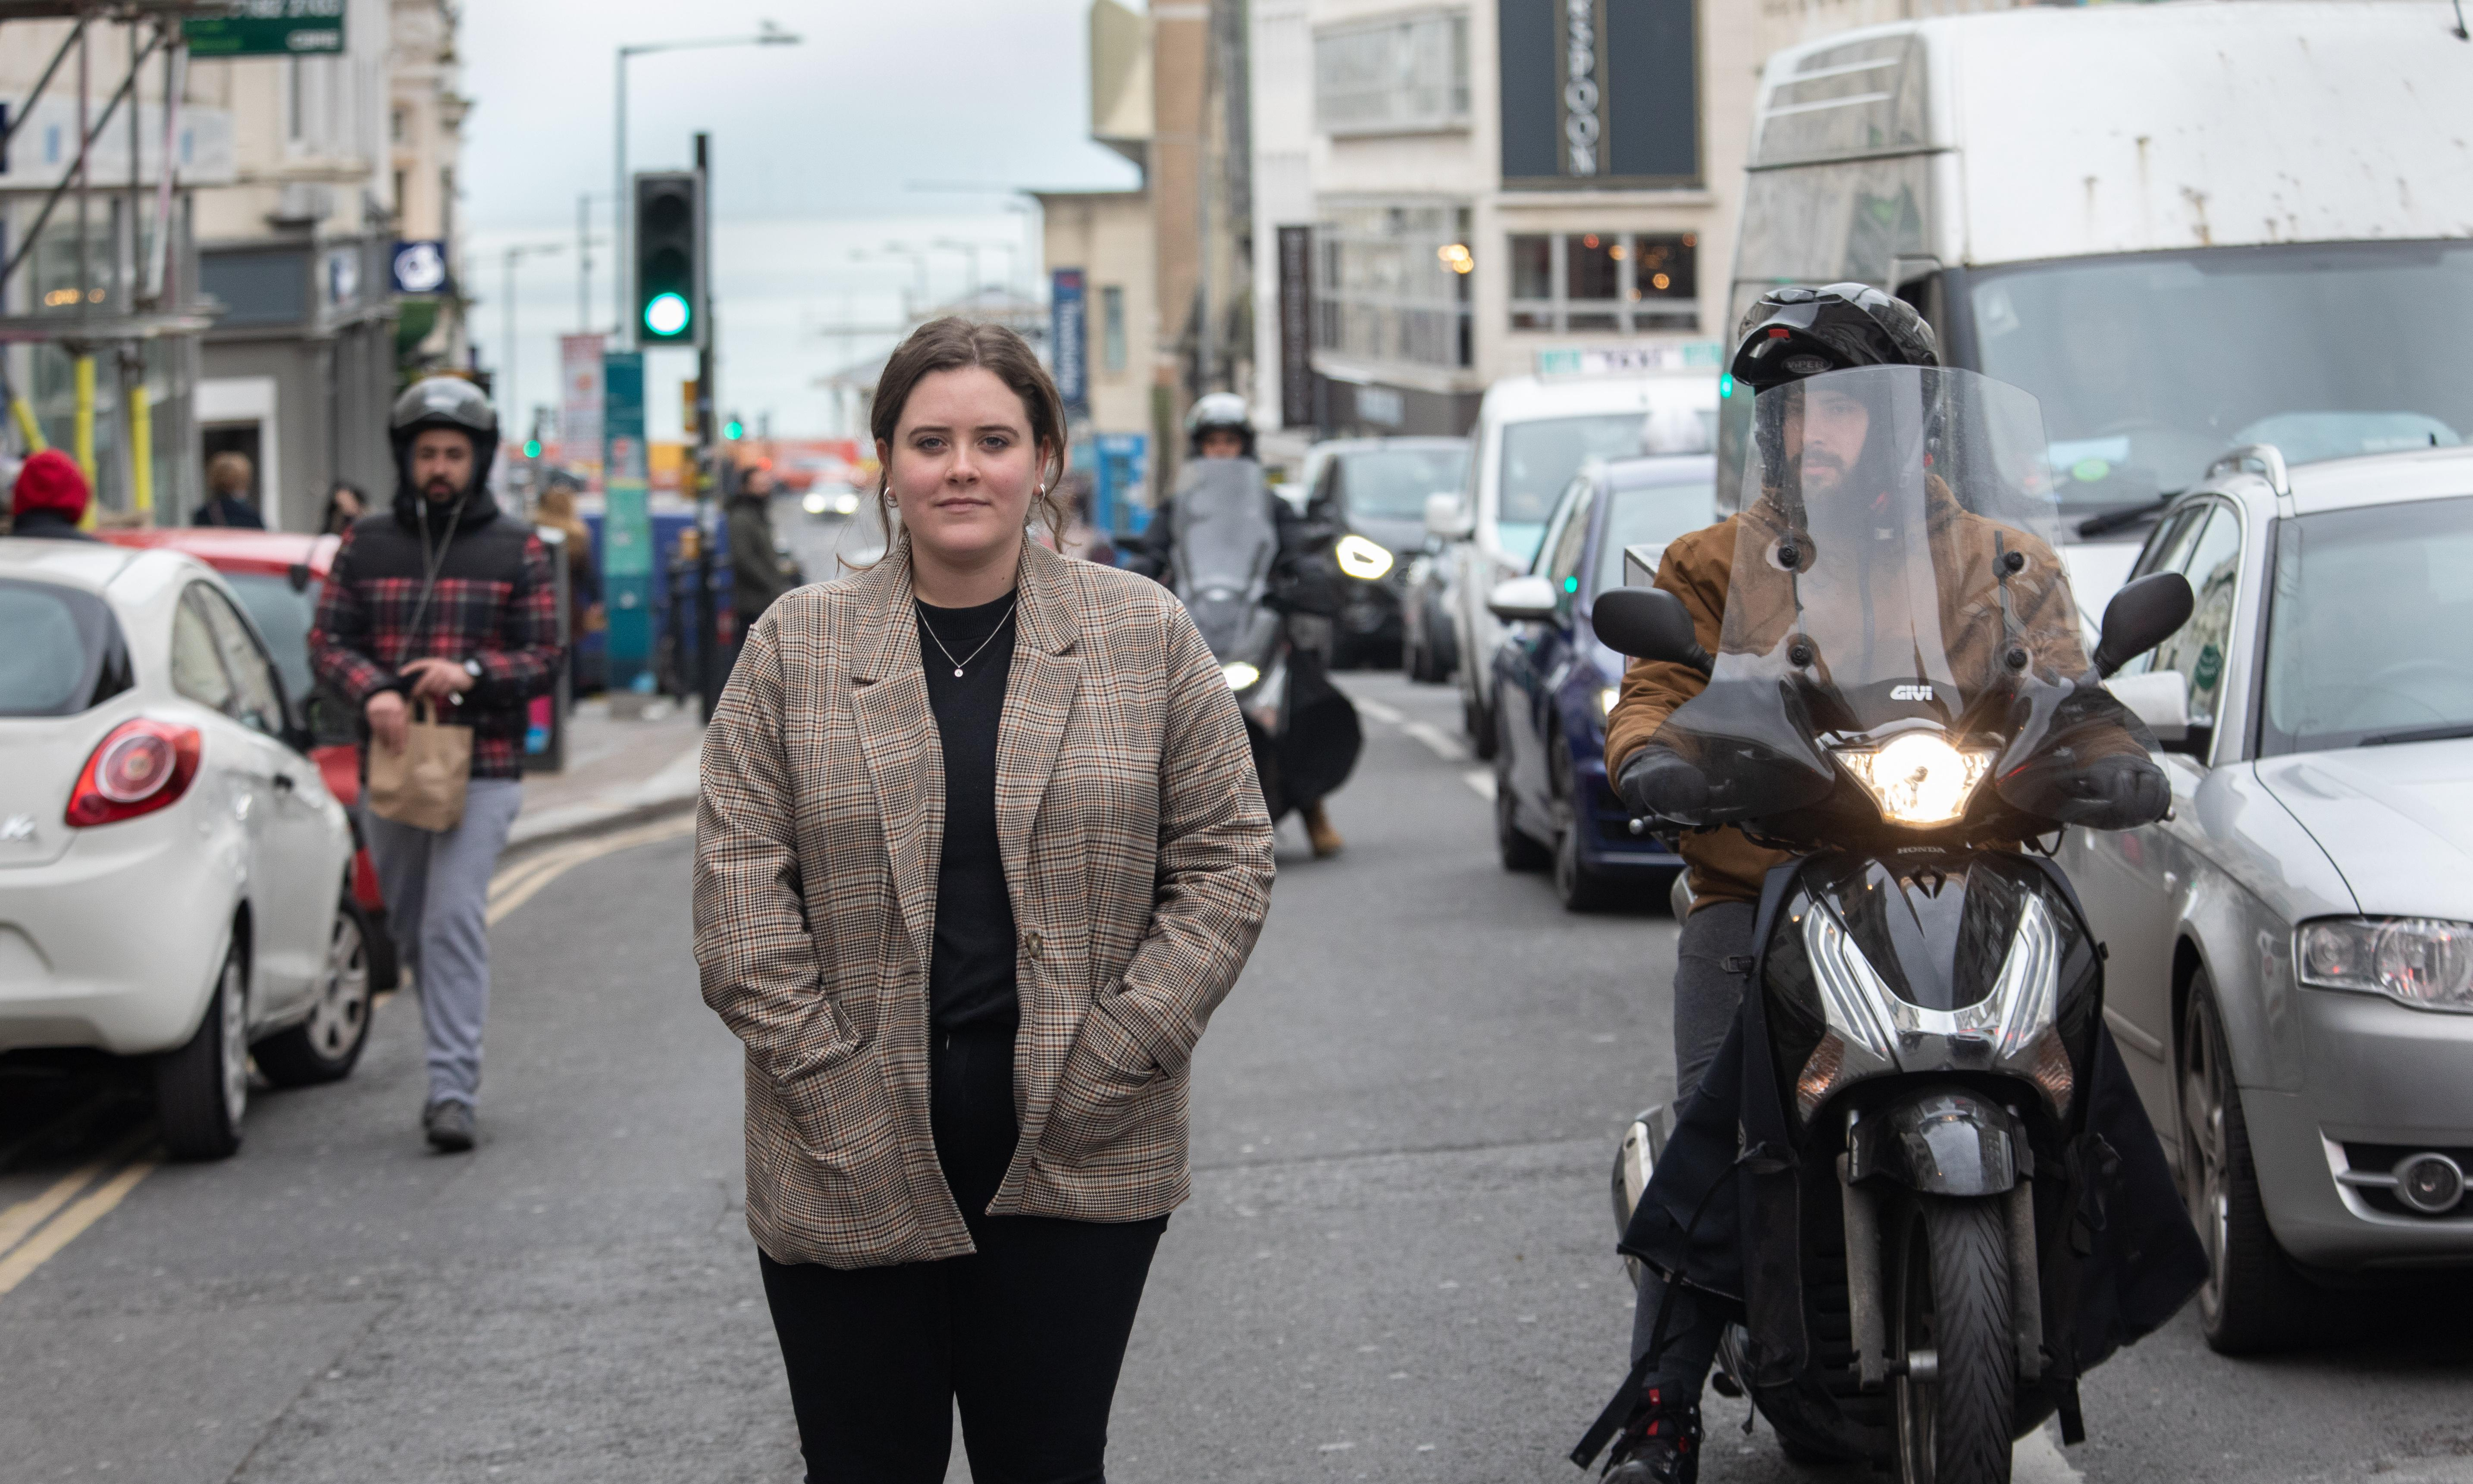 Brighton, Bristol, York ... city centres signal the end of the road for cars